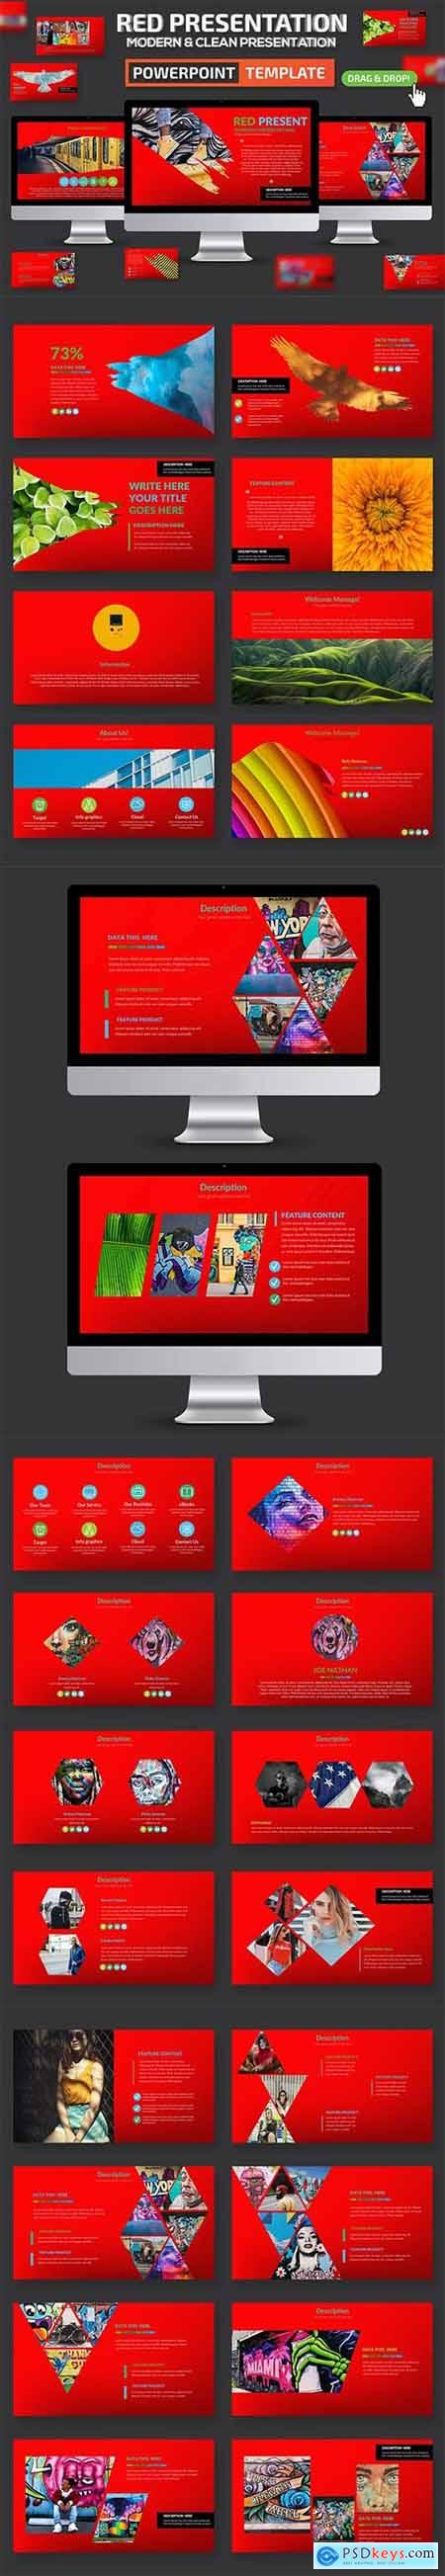 Red Powerpoint and Keynote Presentation